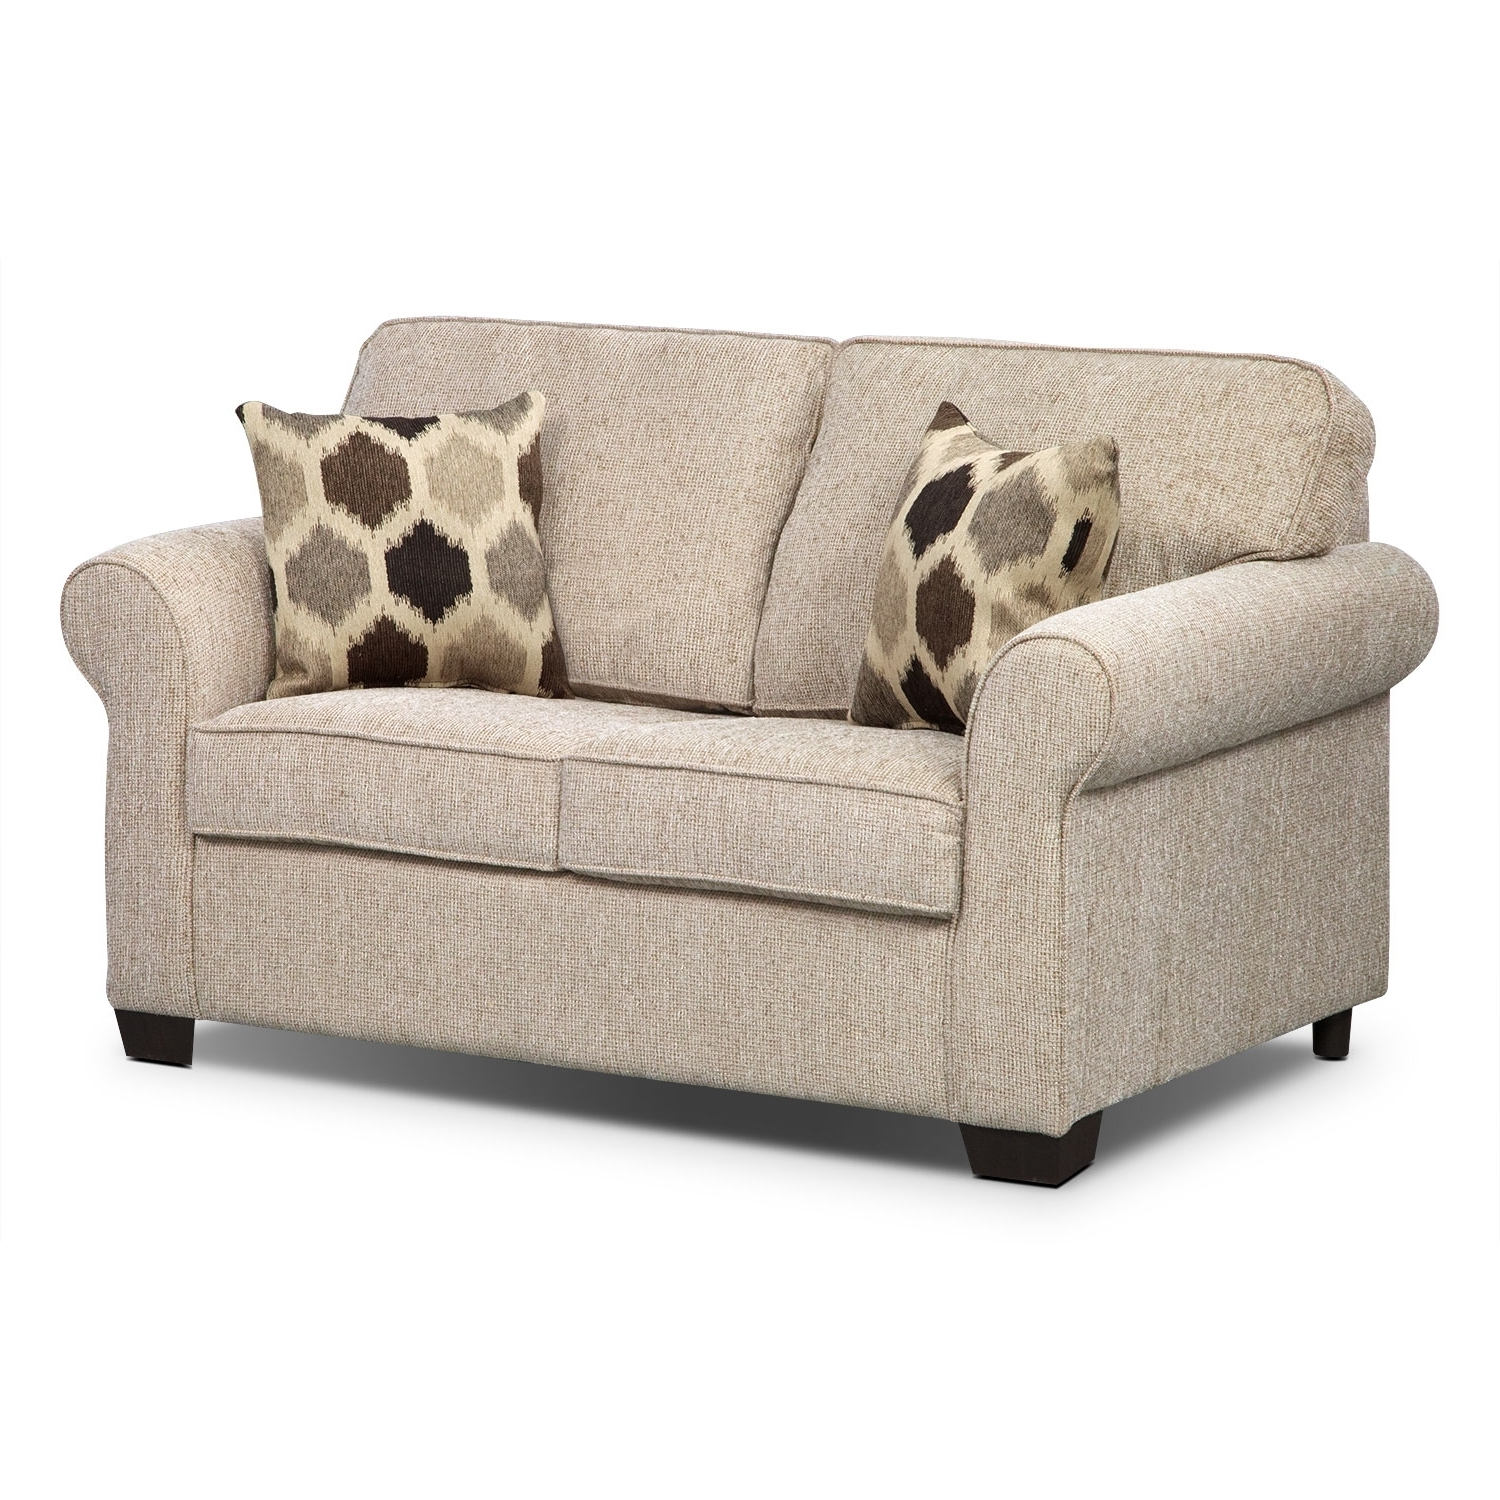 Jennifer Convertibles Sectional Sofas Throughout Preferred Sofa : Fantasy Convertible Sleeper Sofa Encore Convertible Sleeper (View 9 of 15)